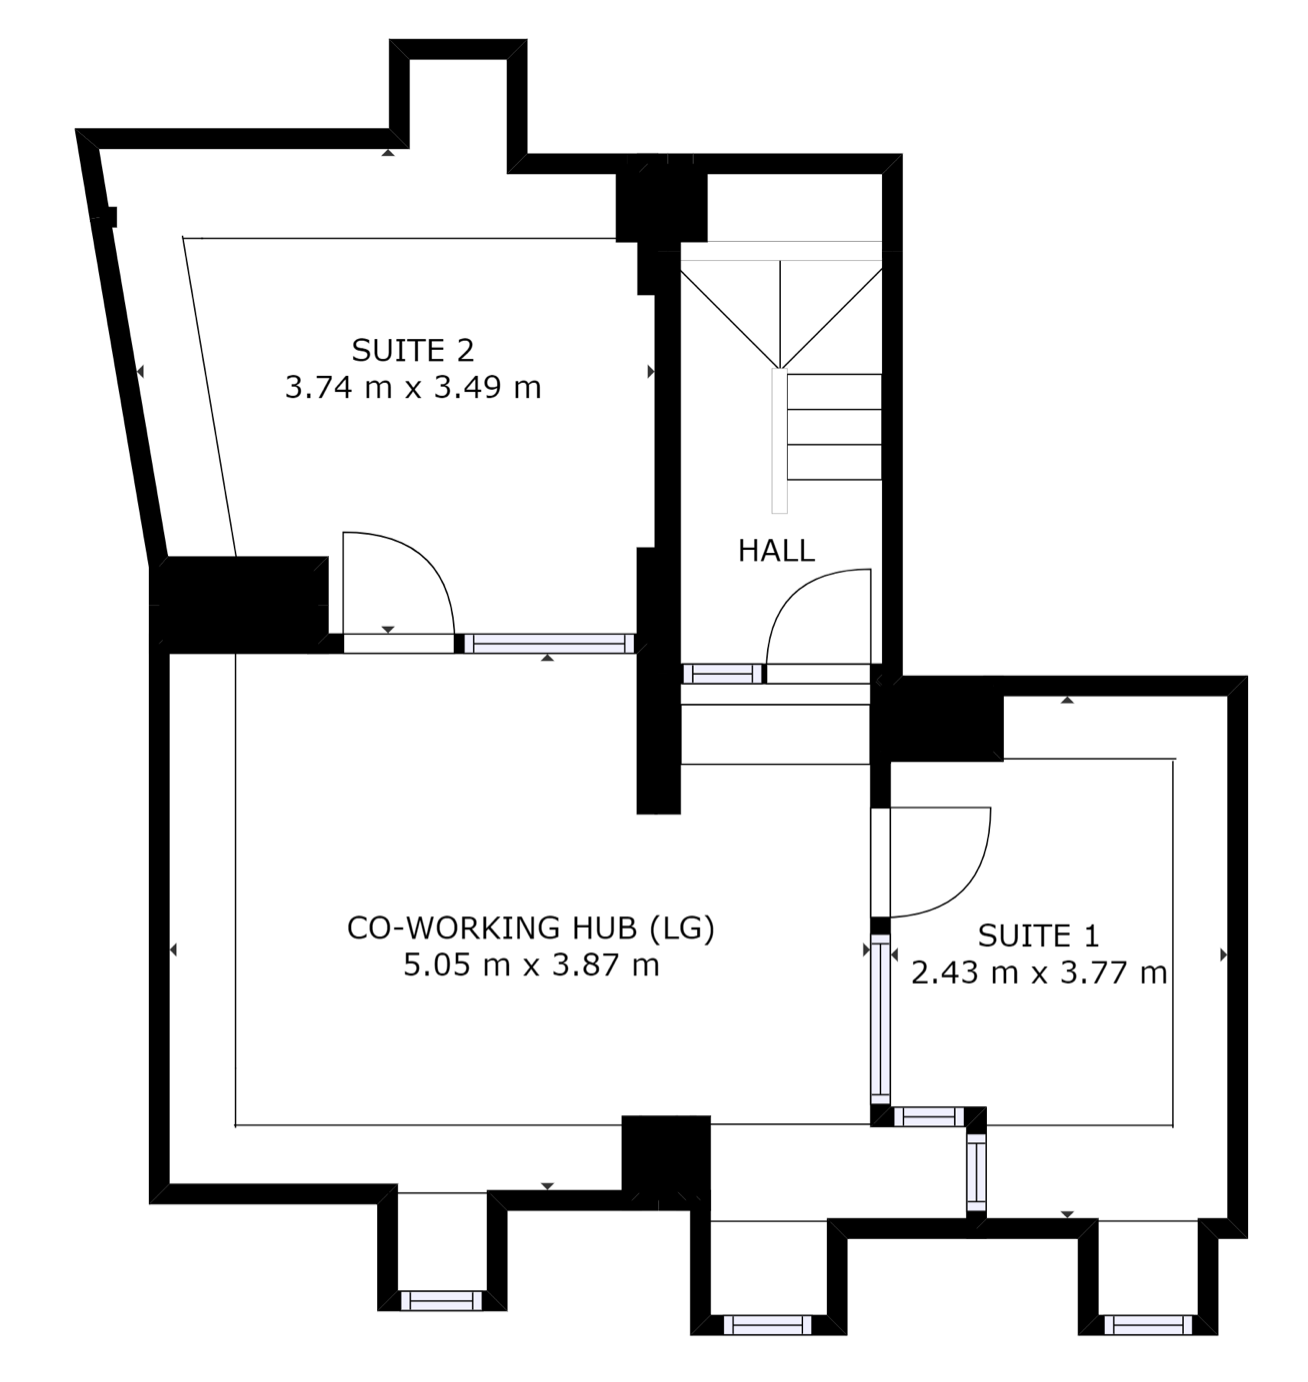 Floor plan of lower ground floor of The Workstation, Abingdon with office suites and coworking area